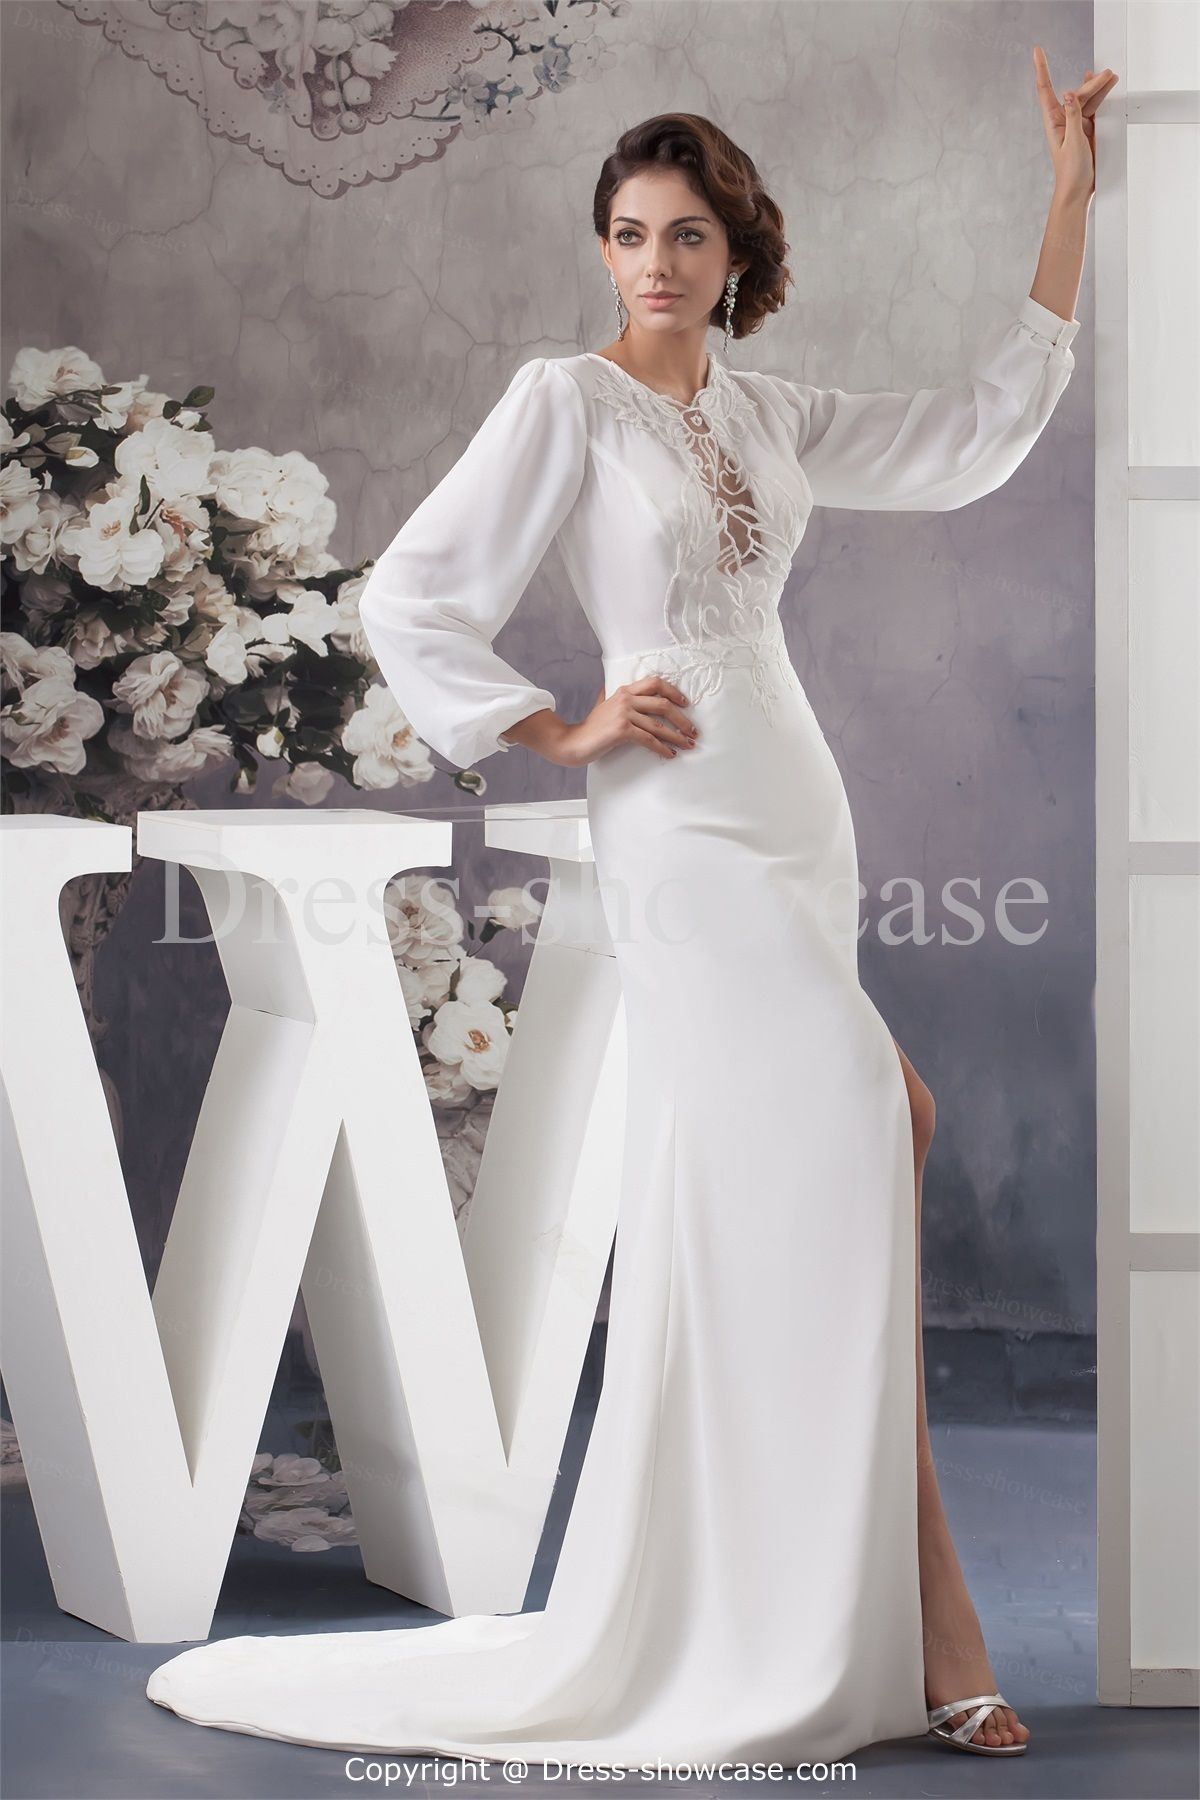 garden wedding dress silk charmeuse long sleeve wedding dress Long Sleeve Garden Zipper back